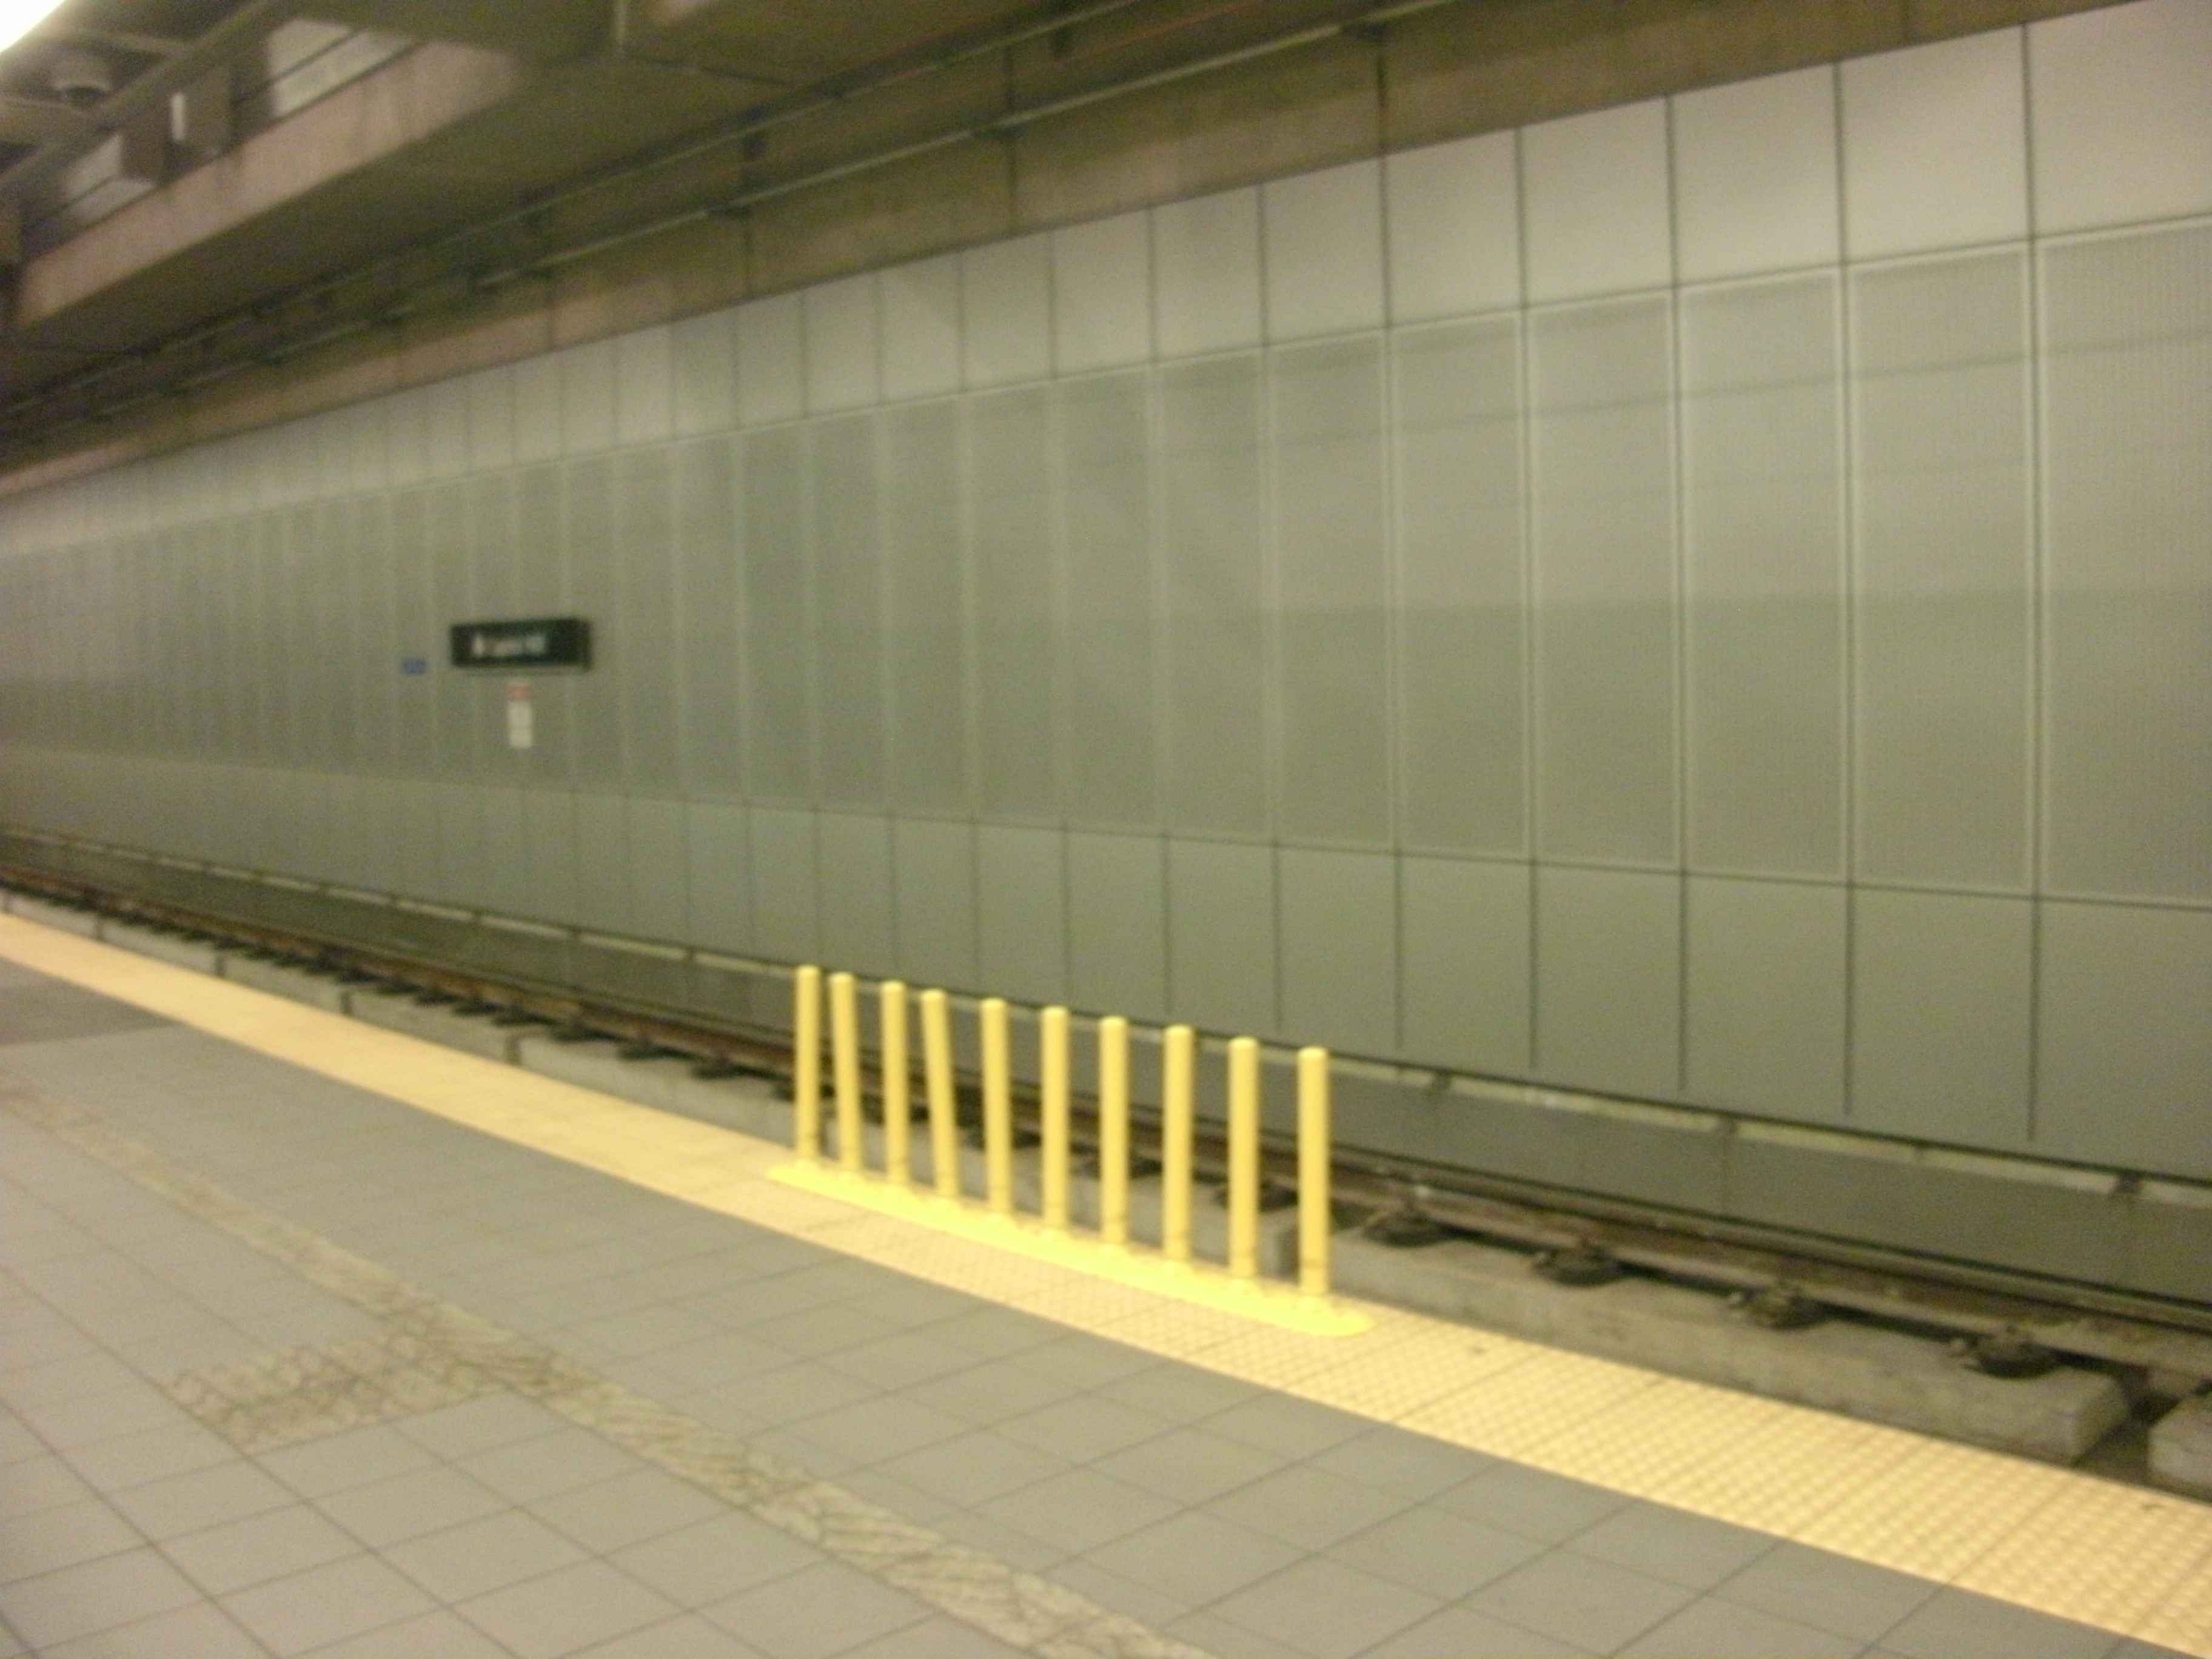 Sound transit is using bollard strips along platforms for the safety barriers.